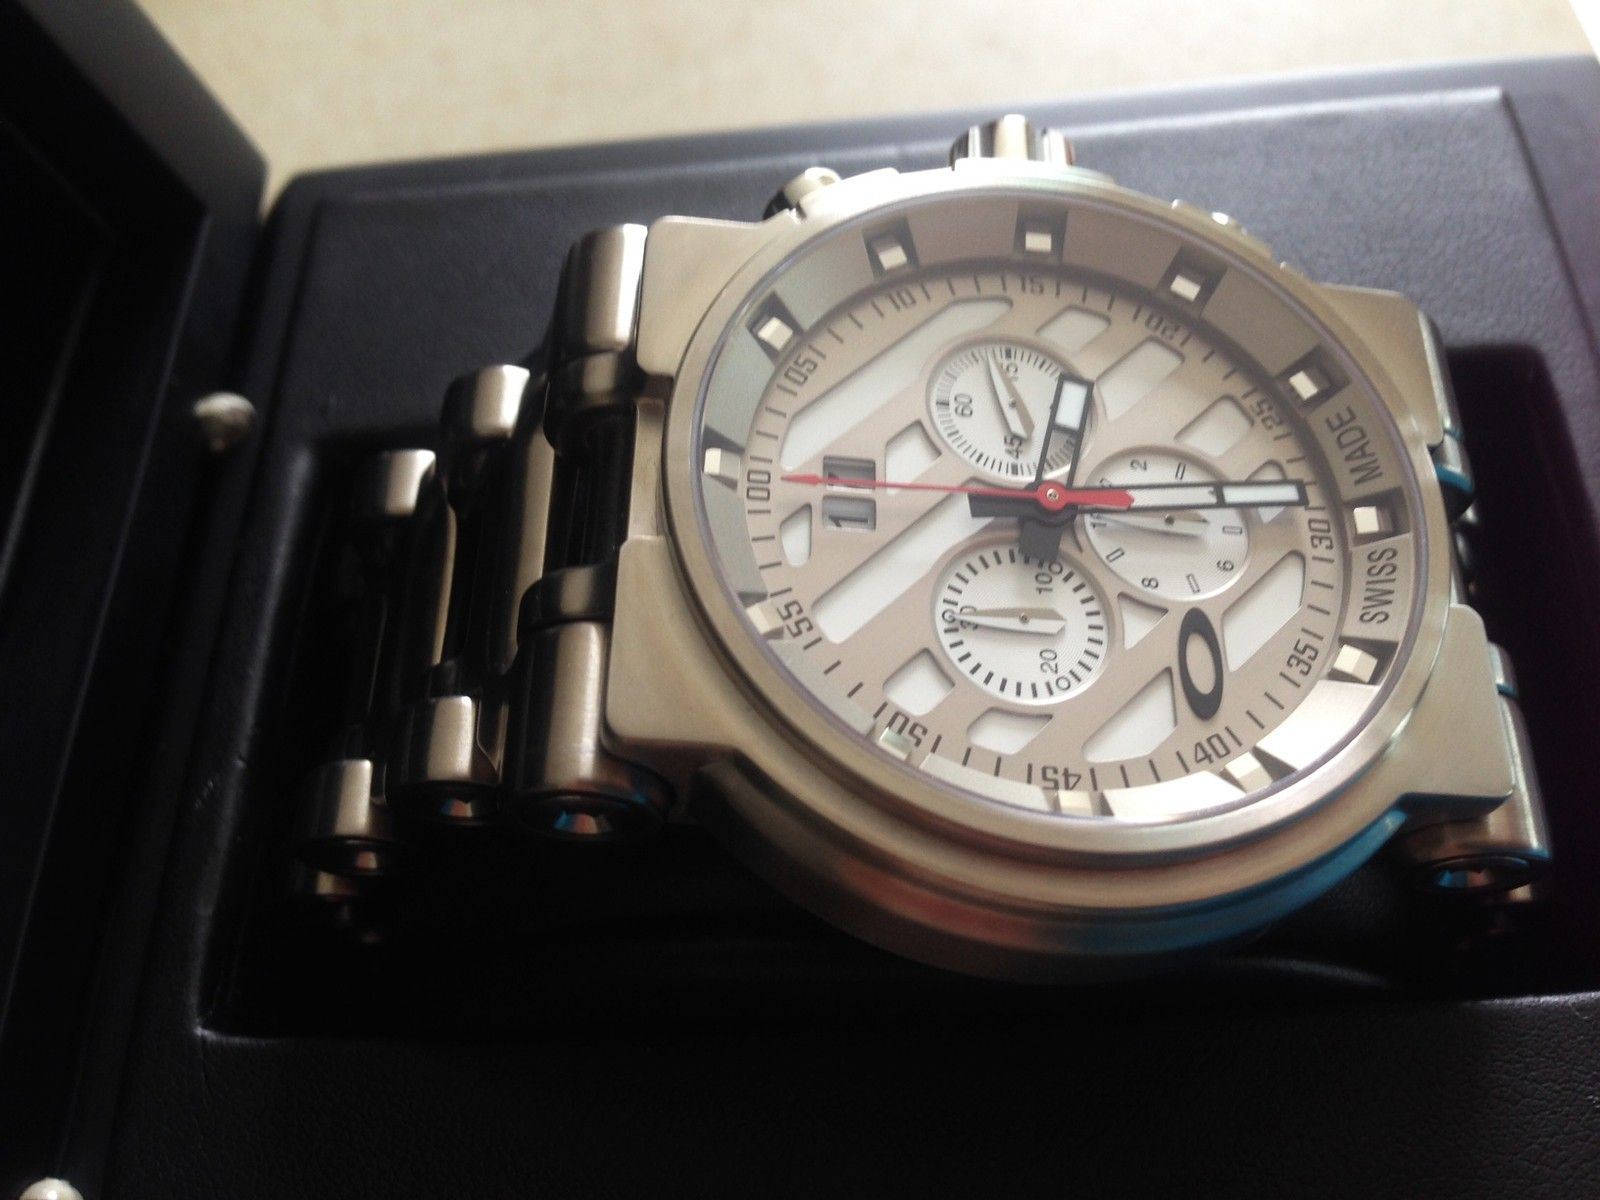 NEW IN BOX Oakley Hollow Point Titanium Watch White Dial 10-046 - 8.JPG